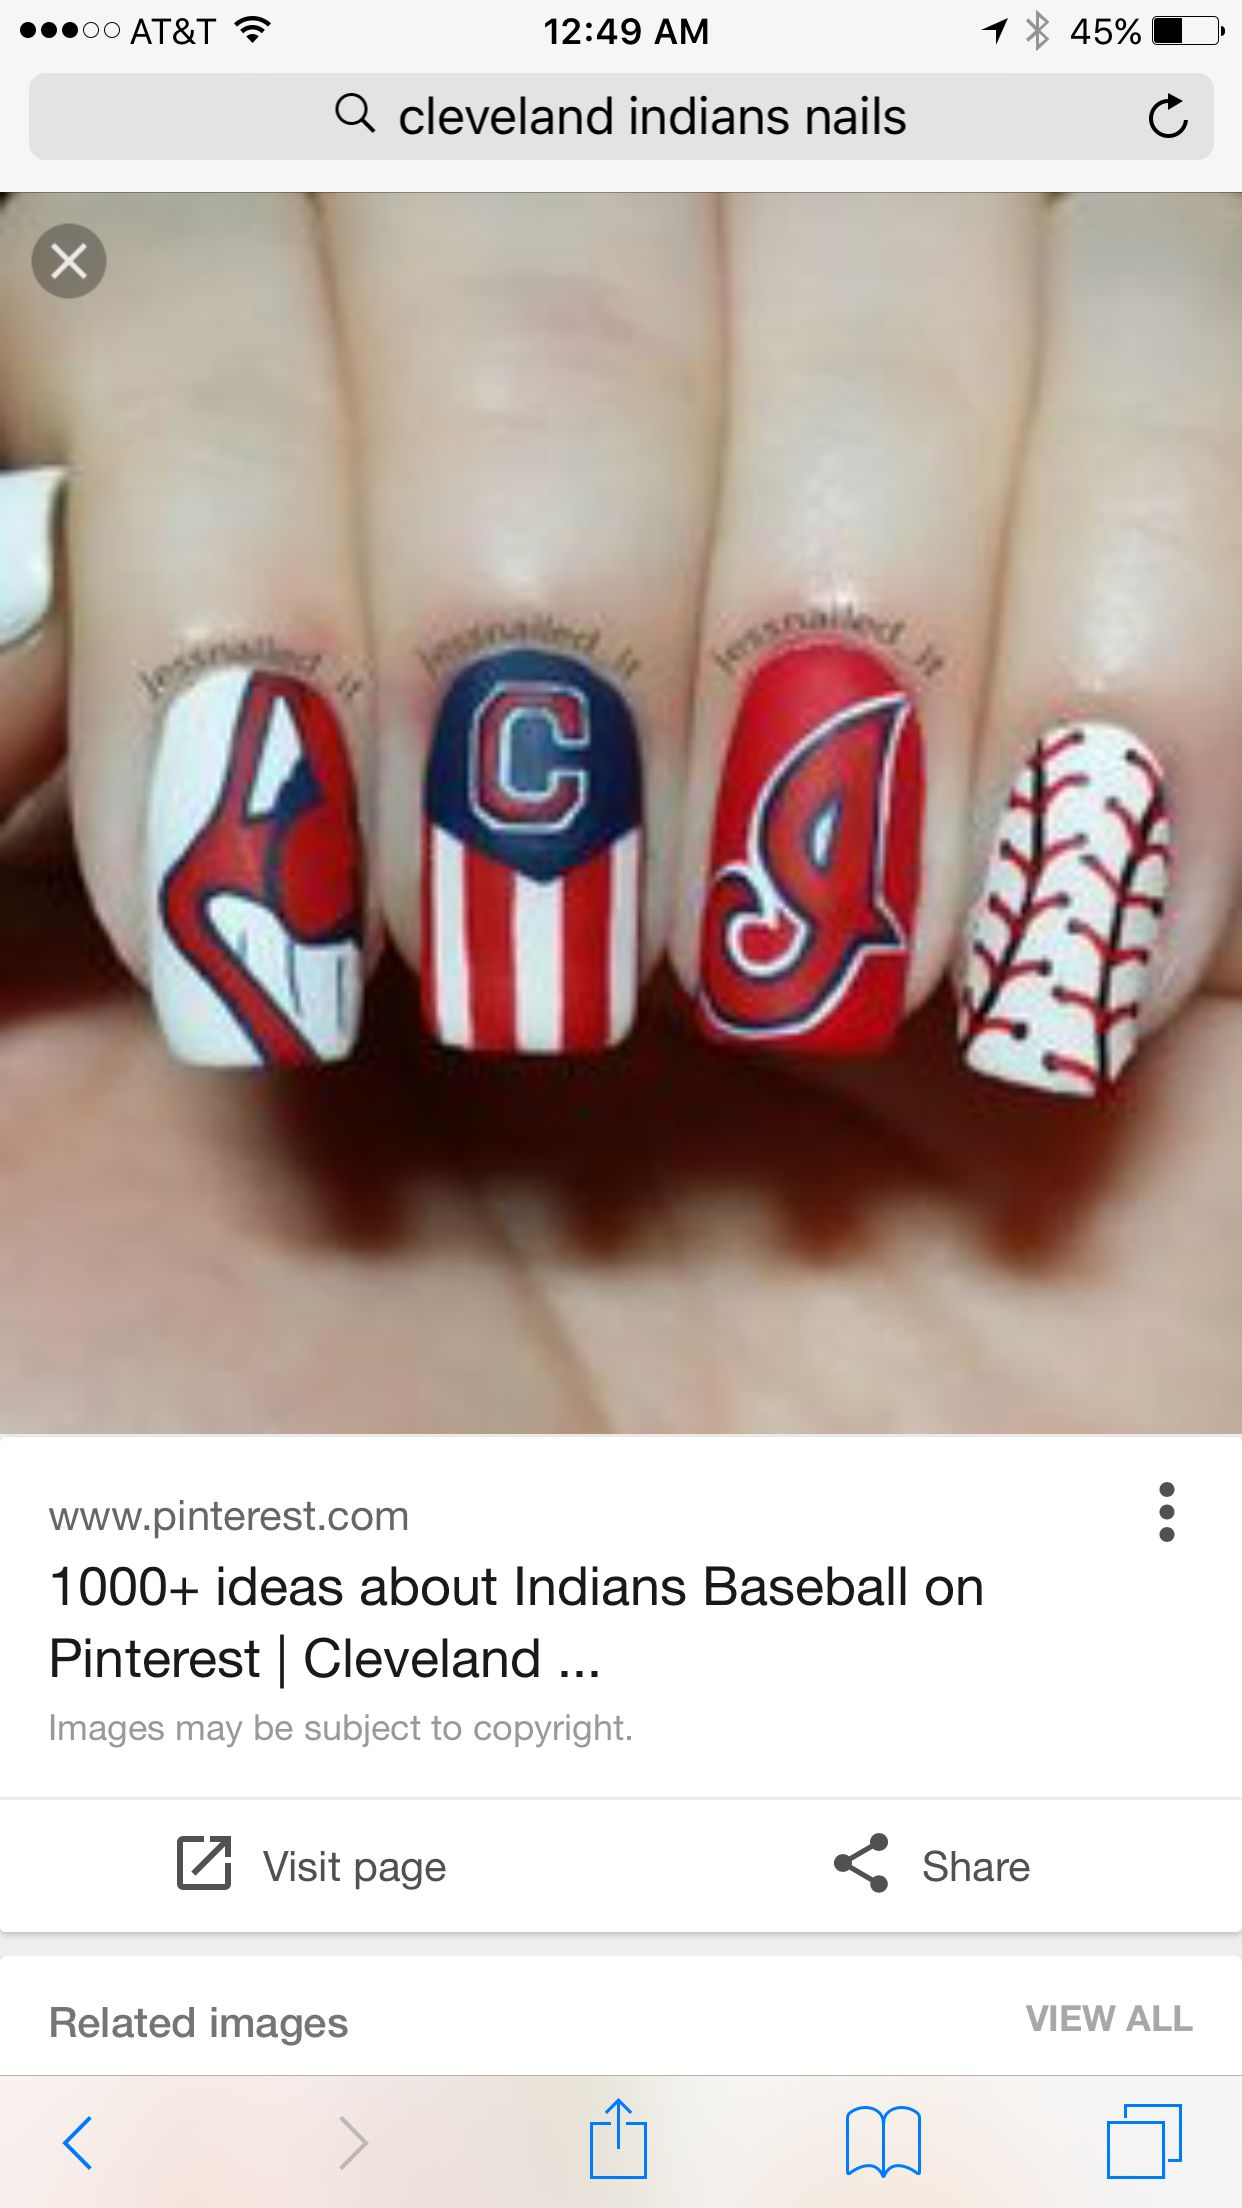 Pin by Molly Radtka on Nails 2 Cleveland indians nails